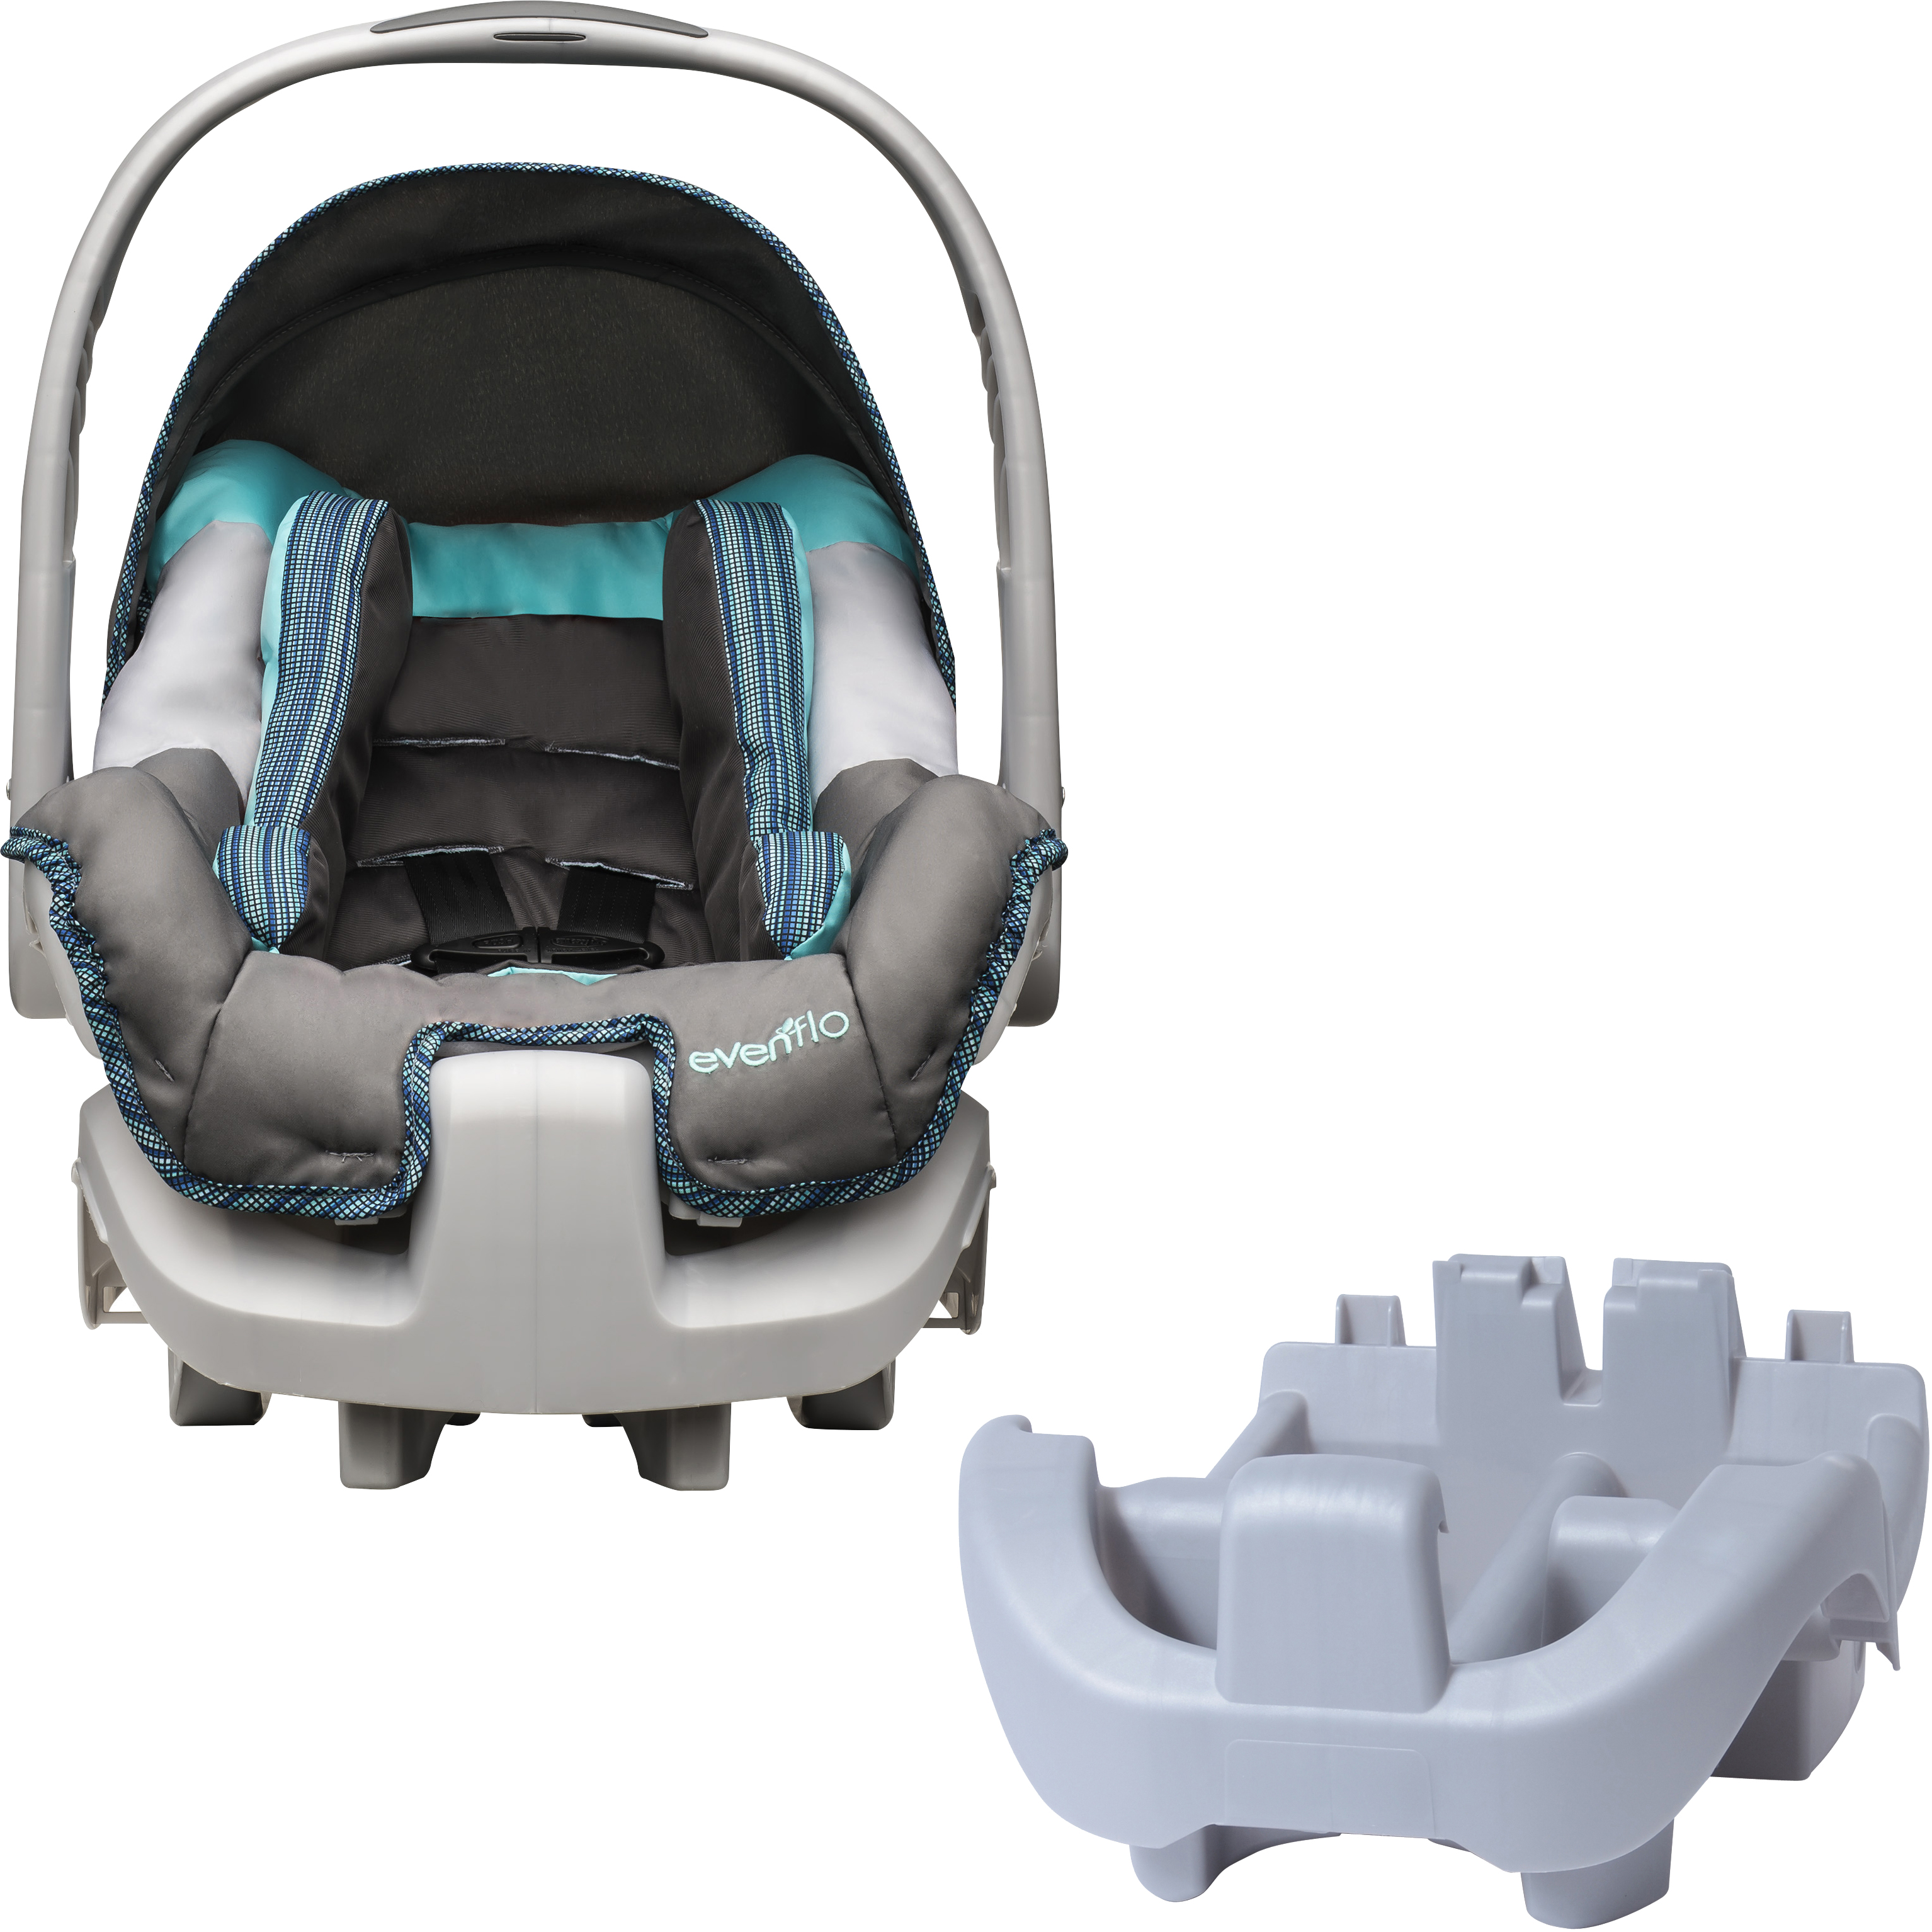 Evenflo Nurture  DLX Infant Car Seat, Henry, with BONUS Nurture Car Seat Base